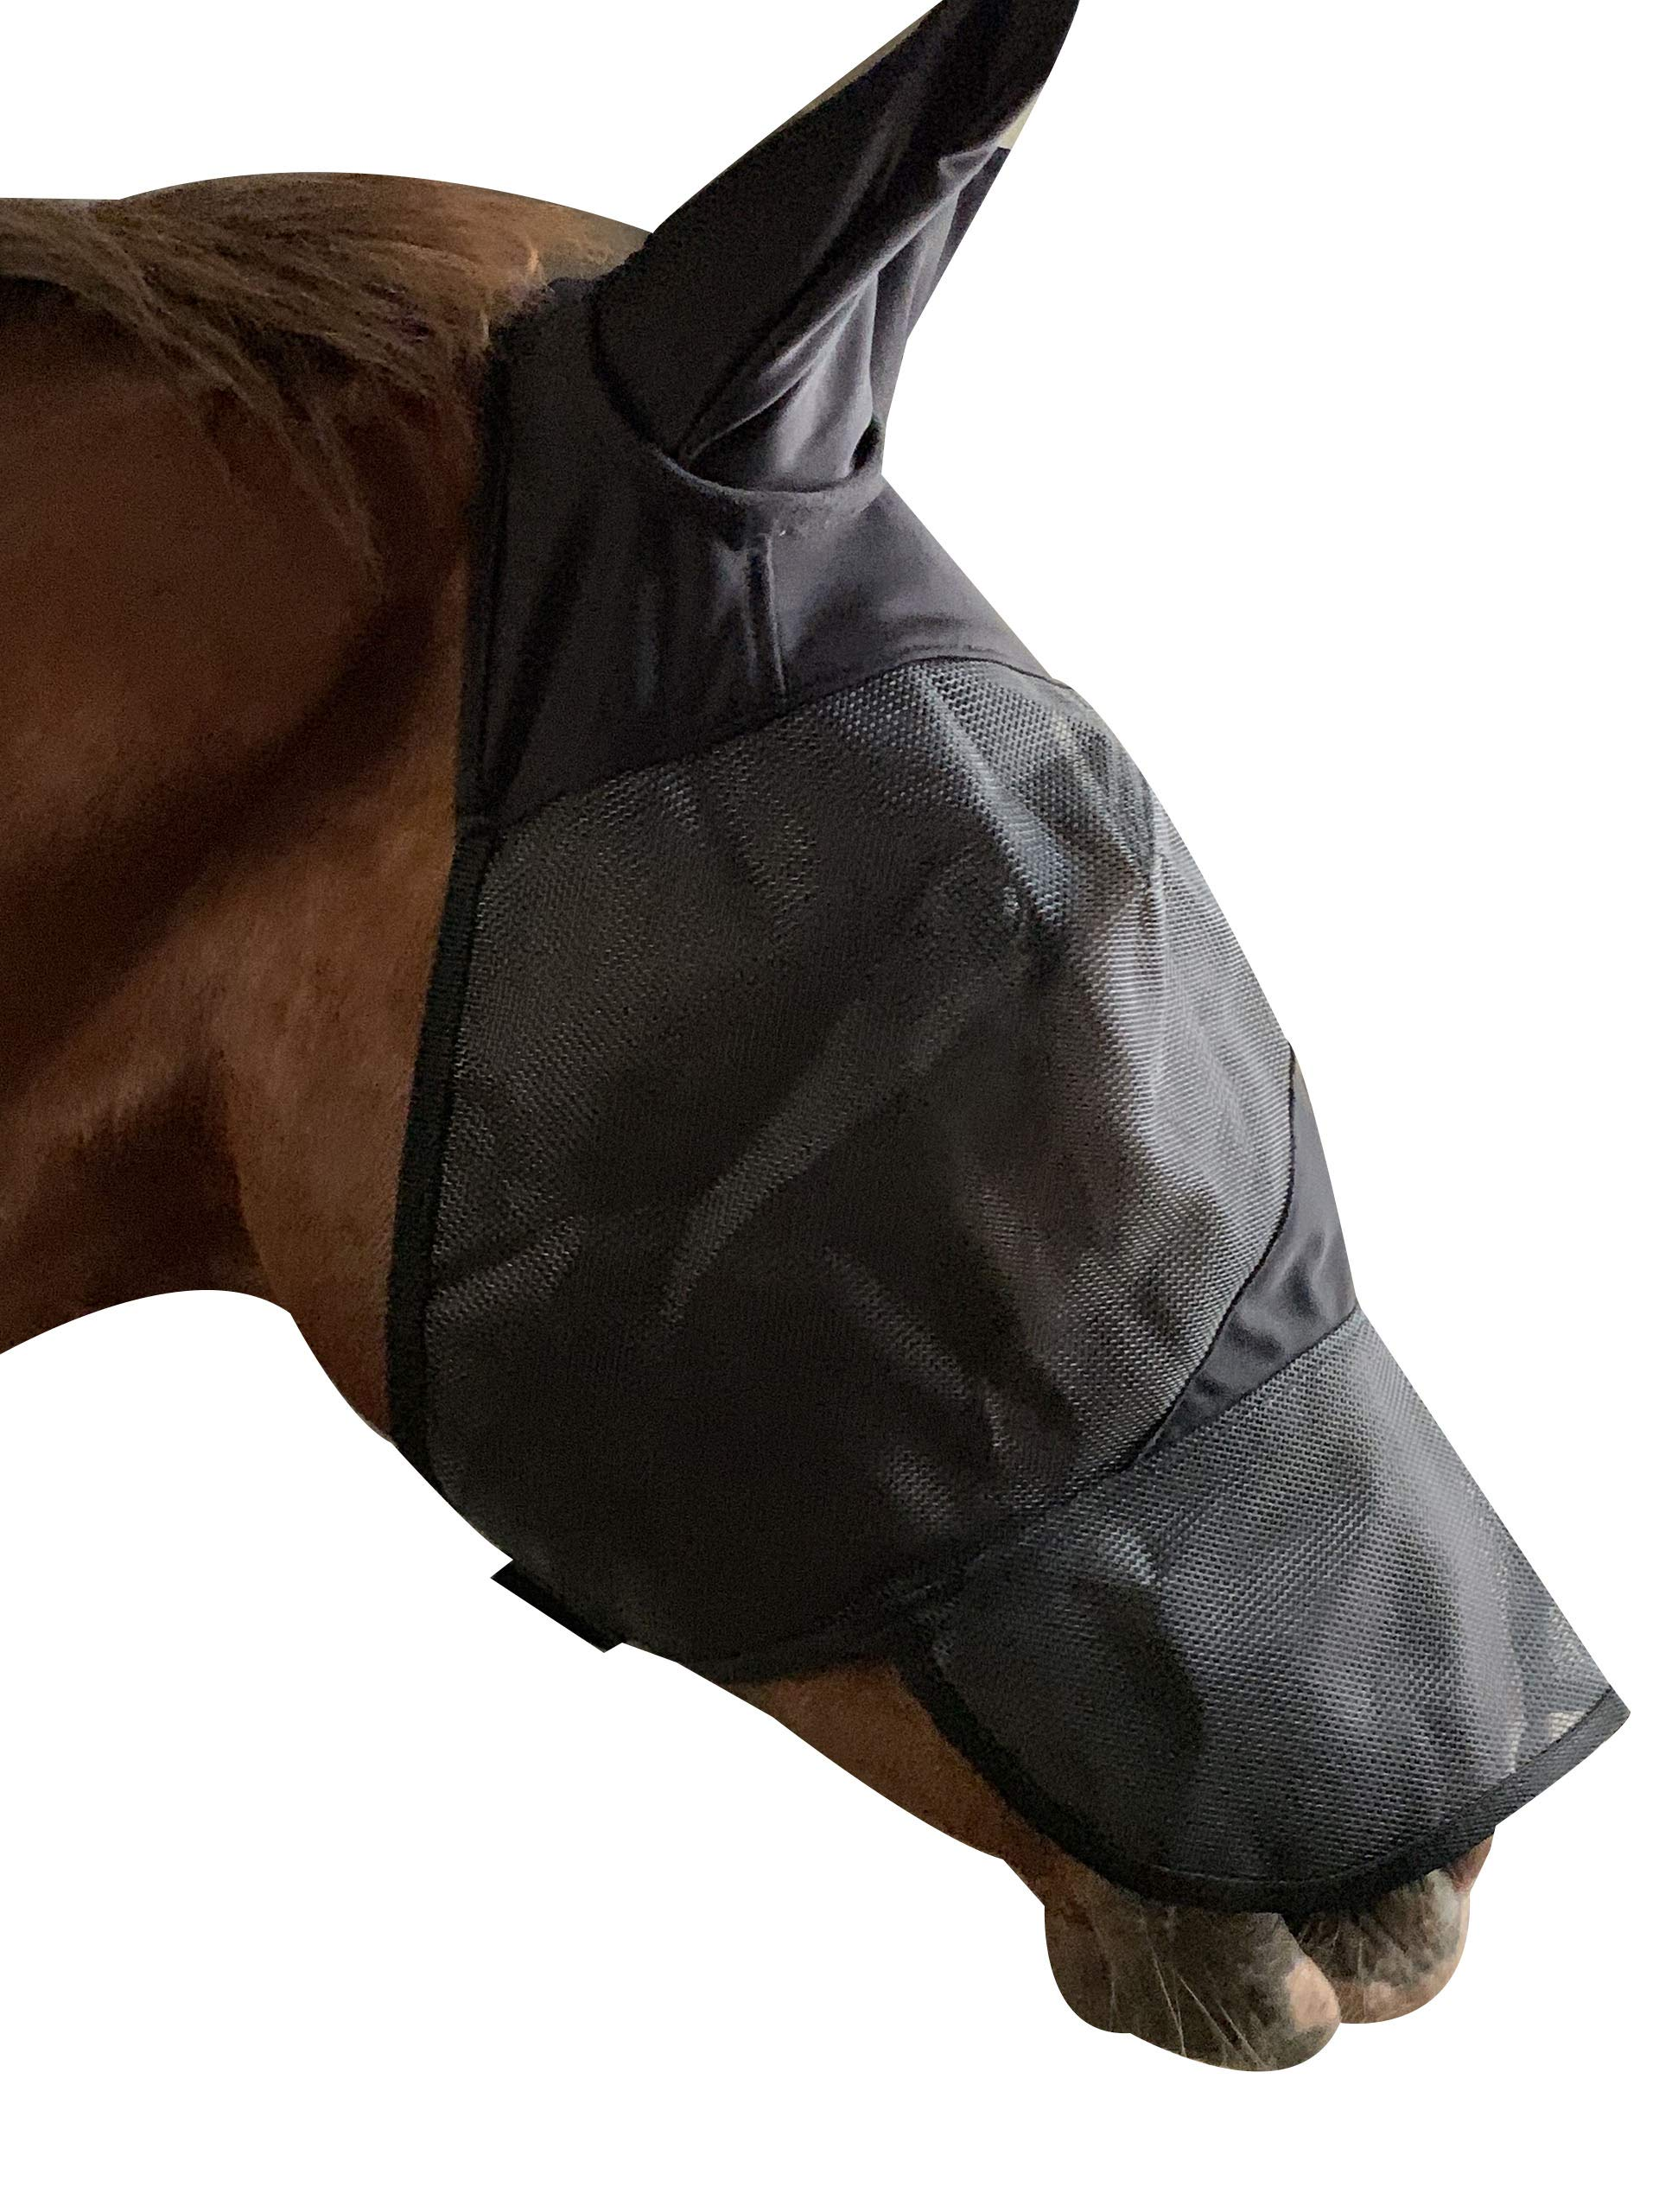 TGW RIDING Horse Fly Mask Full Face Fly Mask with Ears and Long Nose